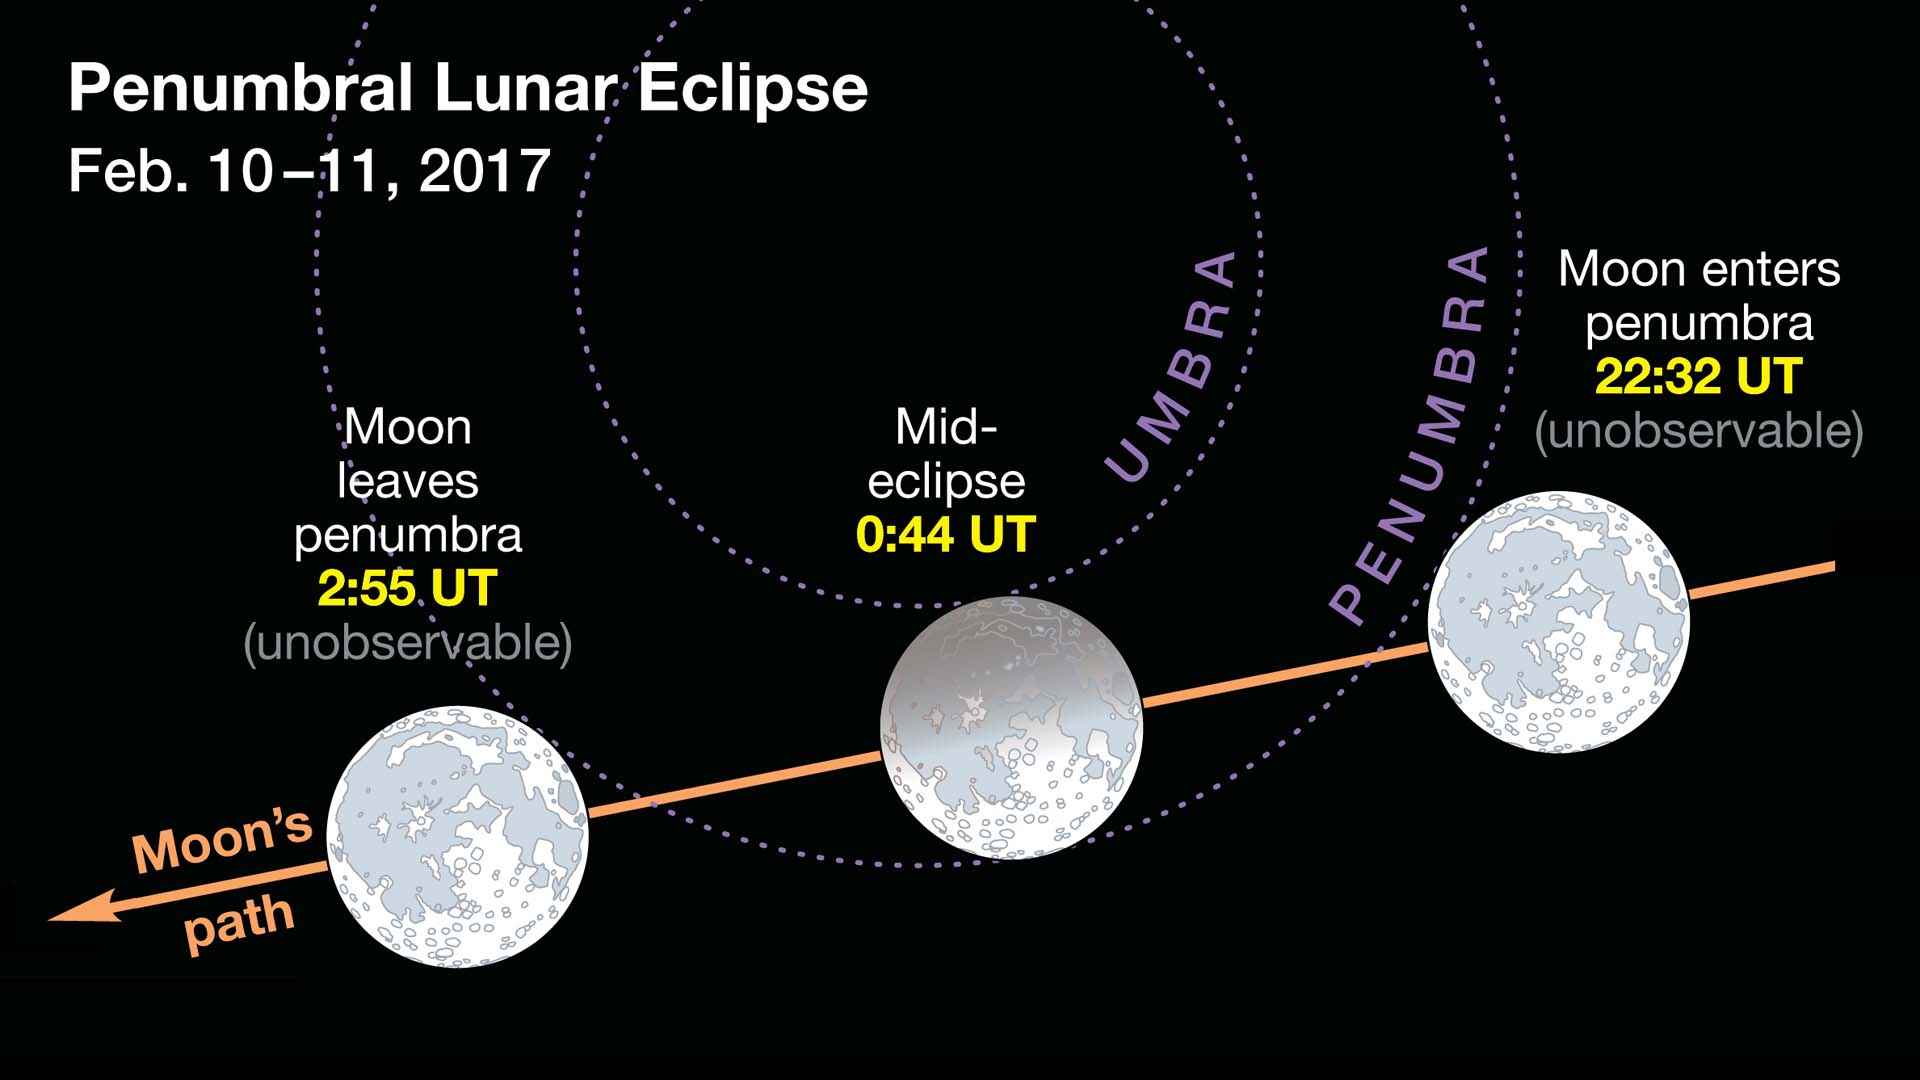 February 2017's penumbral lunar eclipse path.